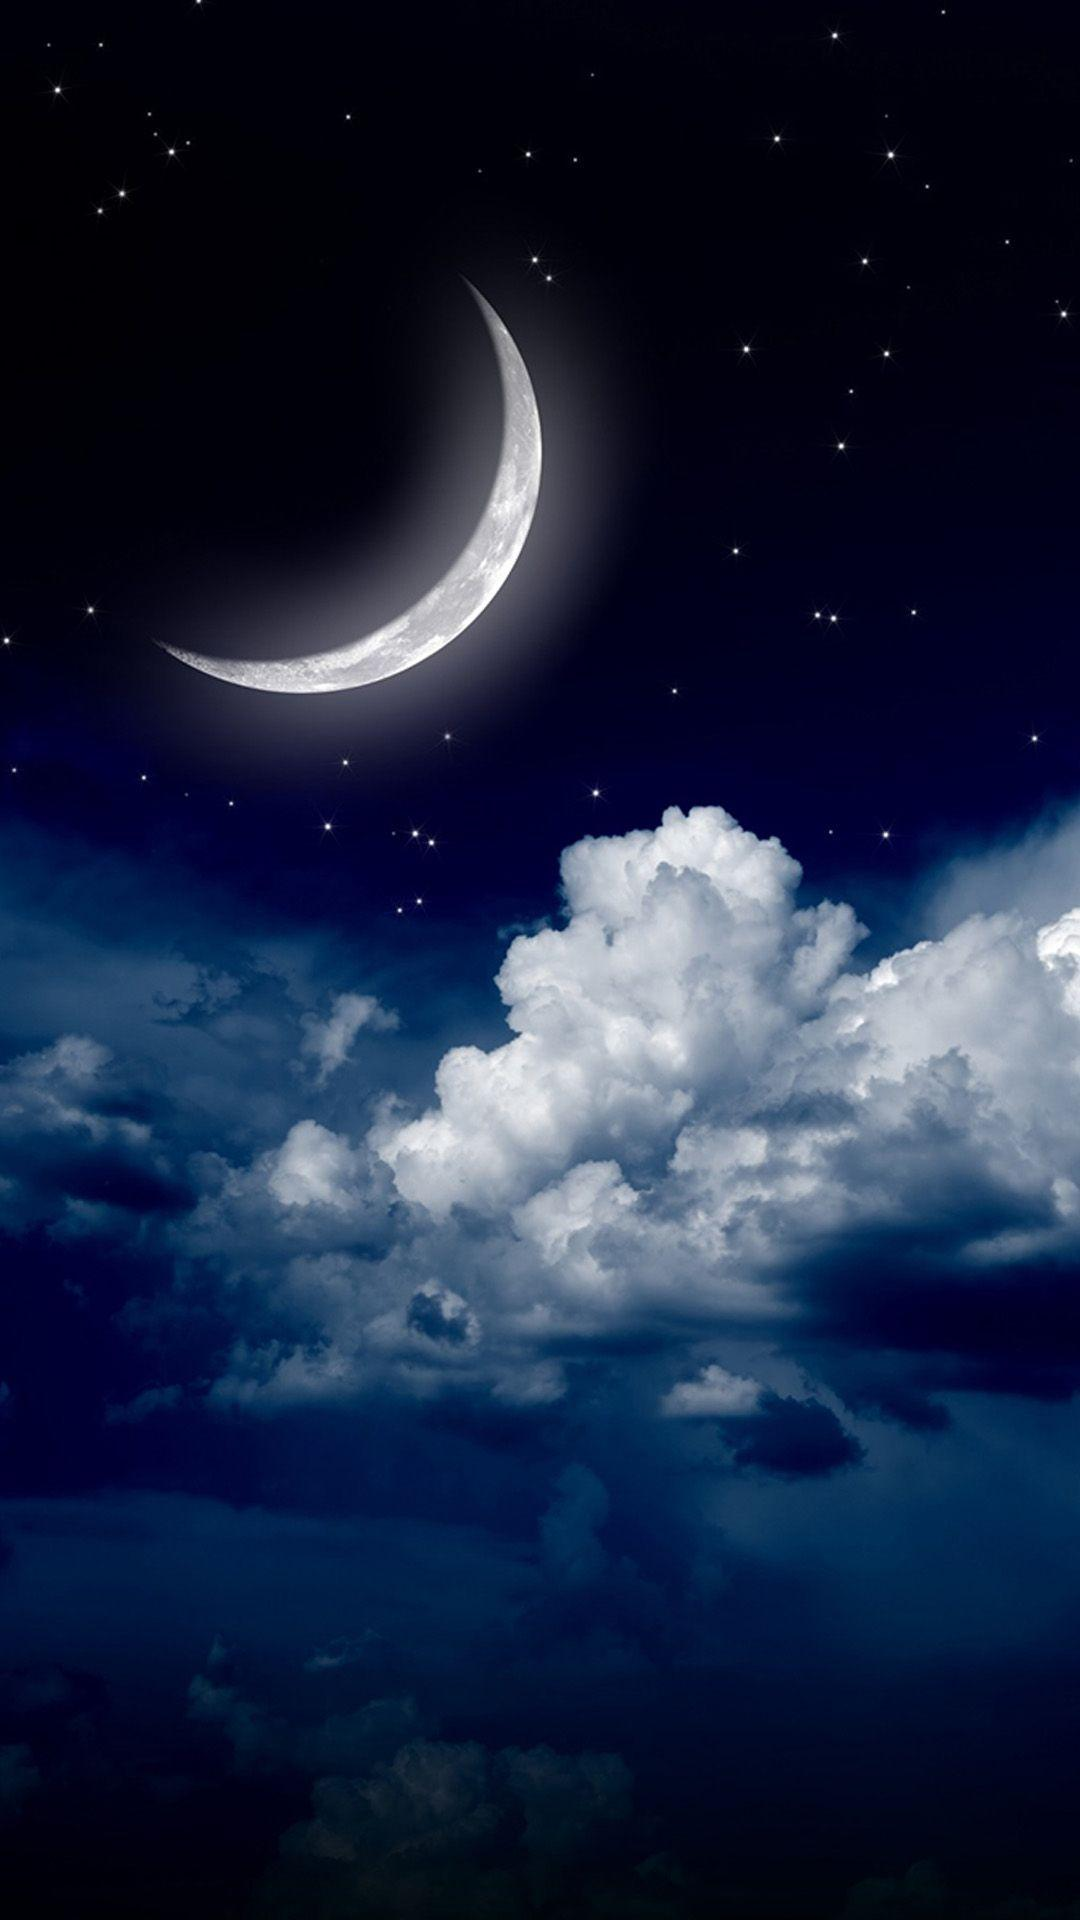 Sky clouds moon. iPhone wallpapers of night stars view and scenery ...